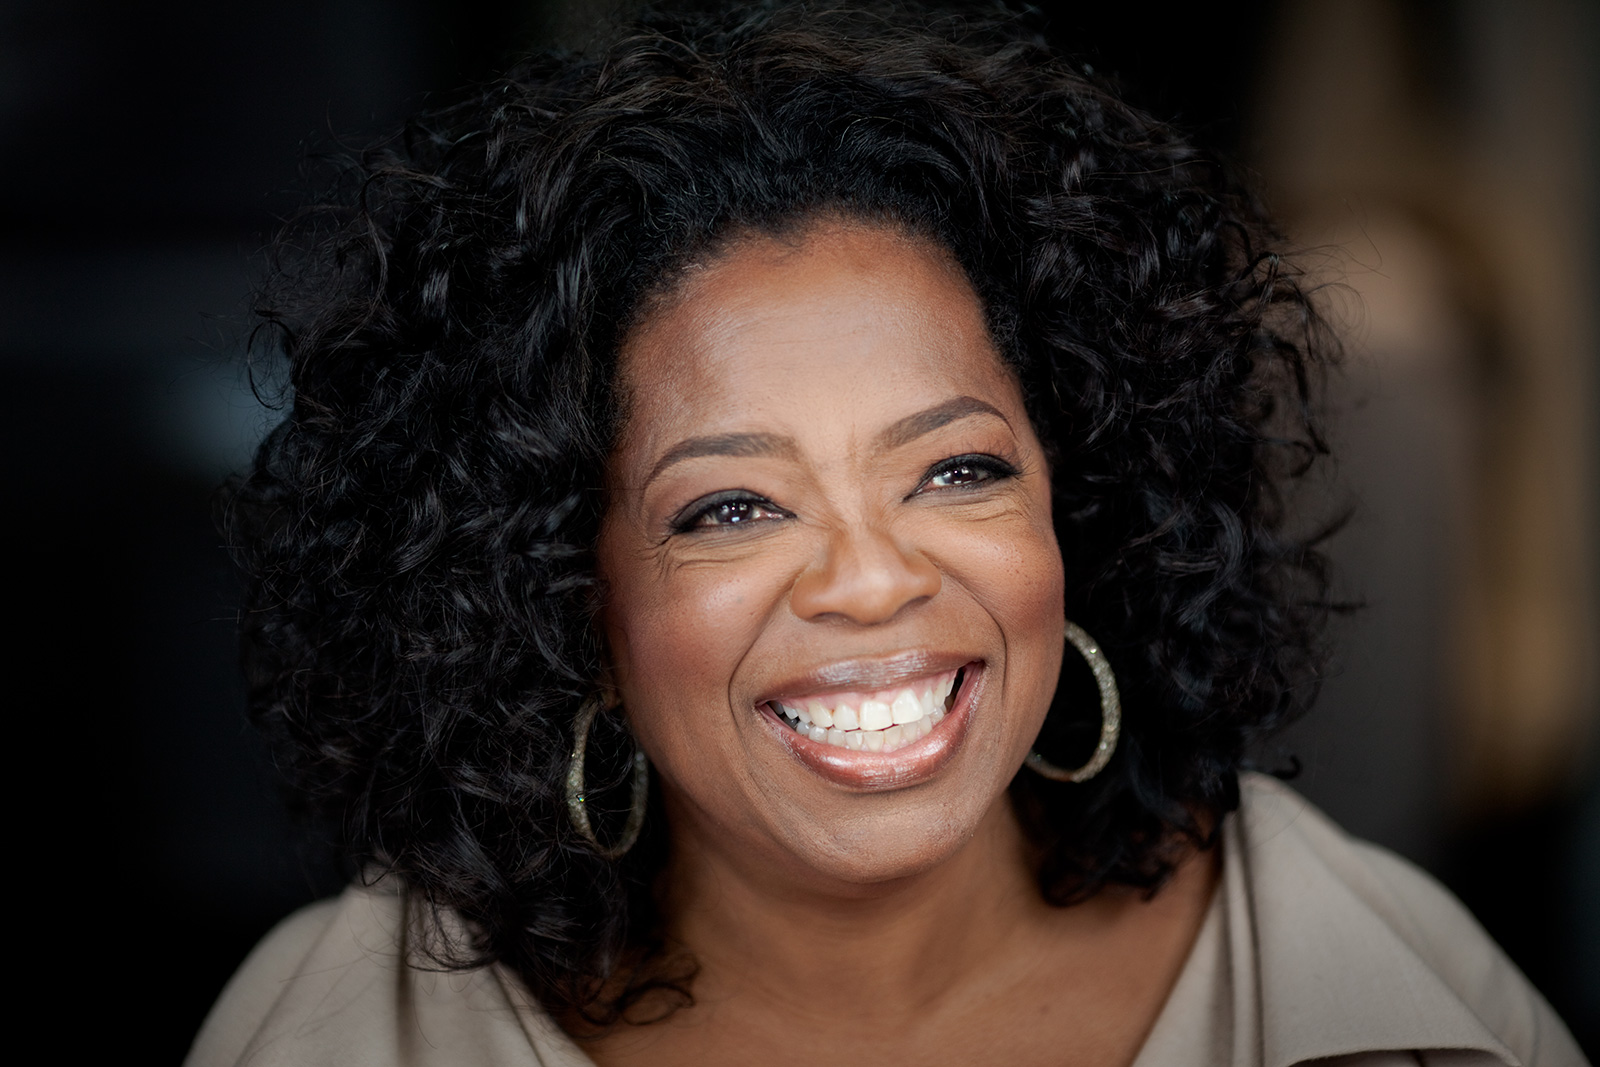 how to change address for o oprah magazine